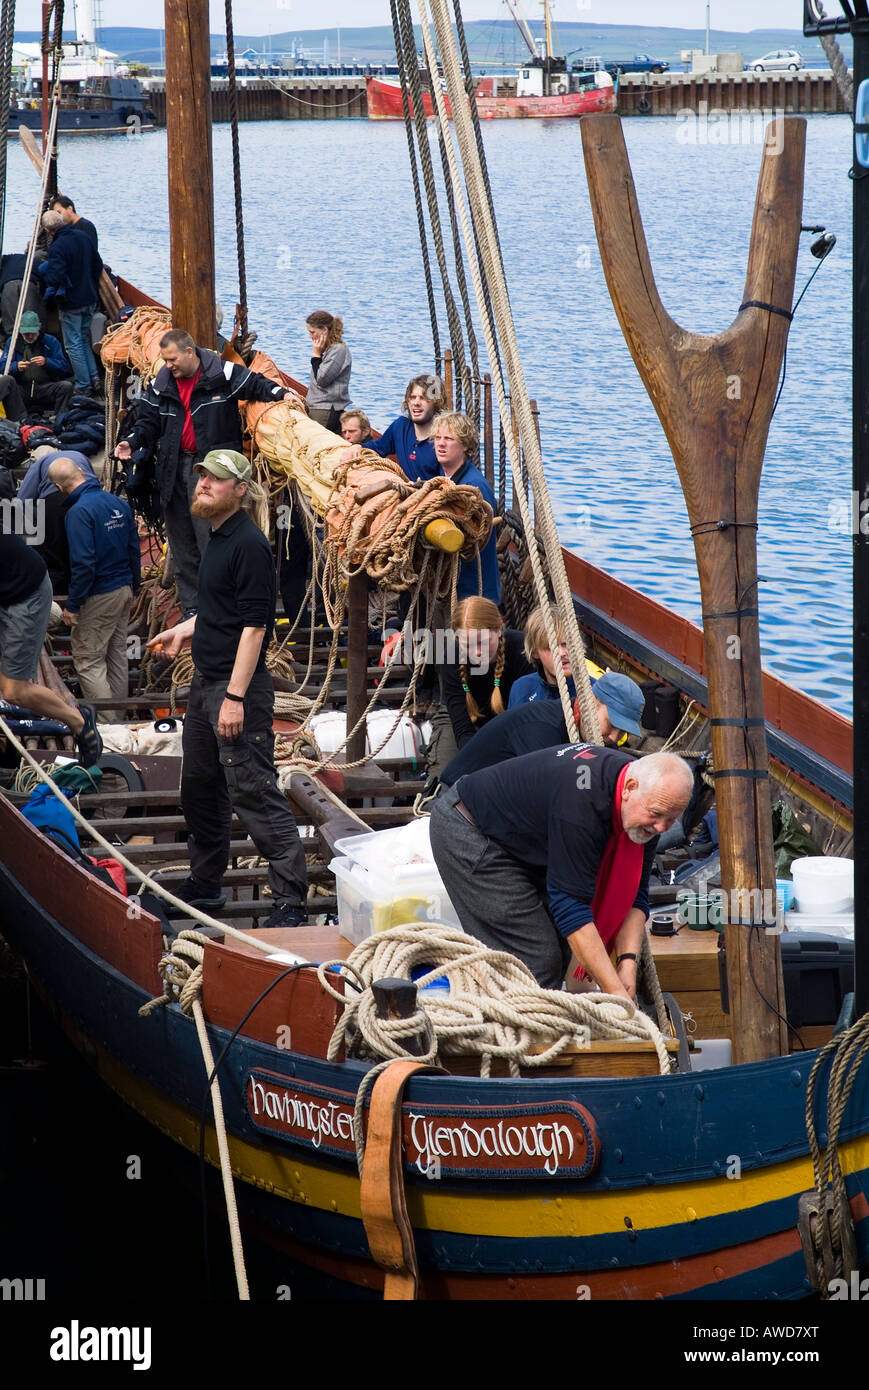 dh Sea Stallion KIRKWALL ORKNEY Sailors main sail Havhingsten fra Glendalough viking galley longboat crew - Stock Image